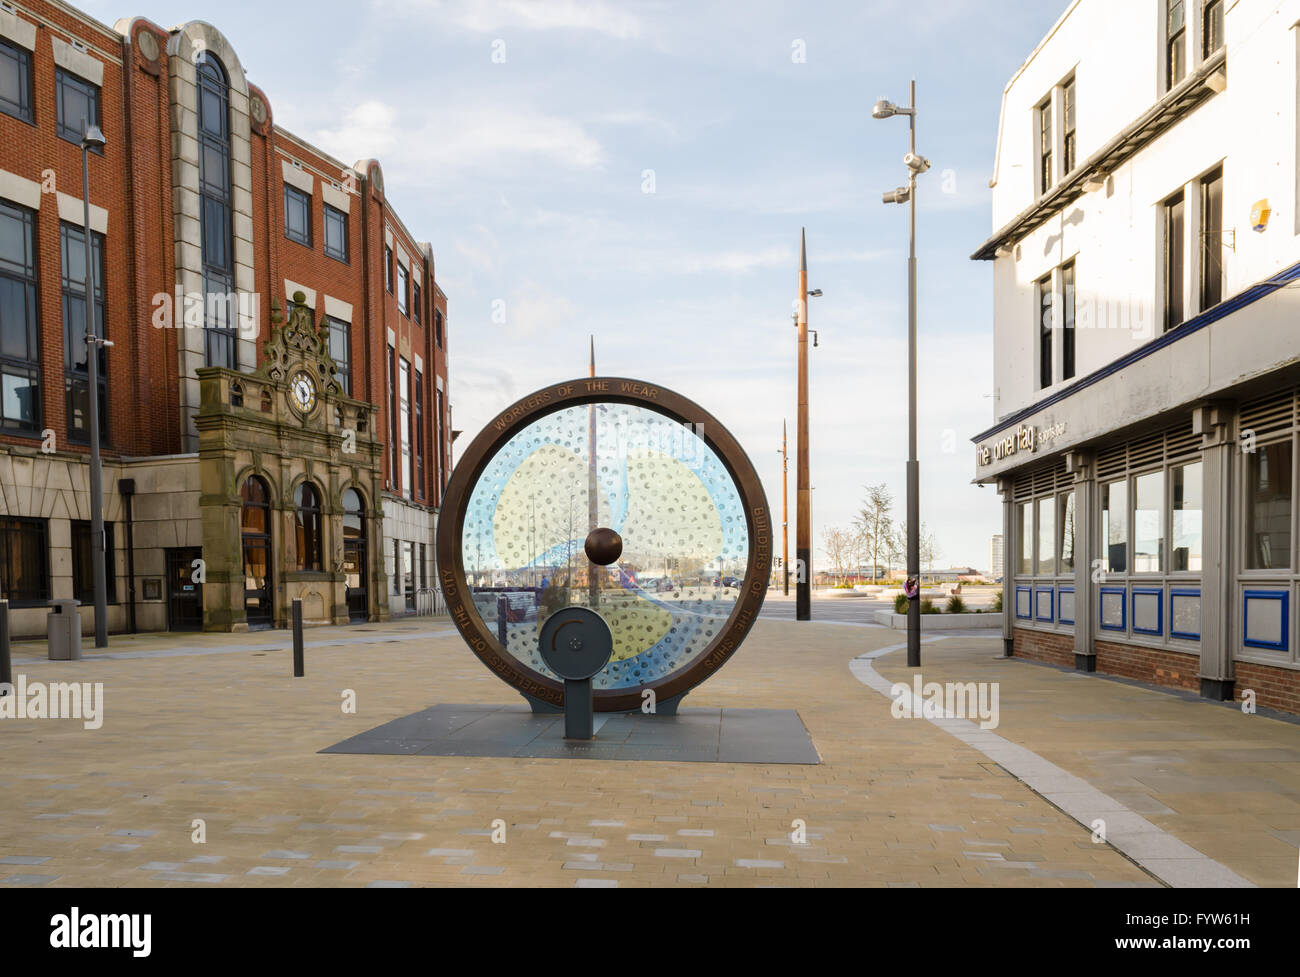 'Propellers of the City' by Stephen Broadbent, public artwork installation at Keel Square, Sunderland, Tyne - Stock Image